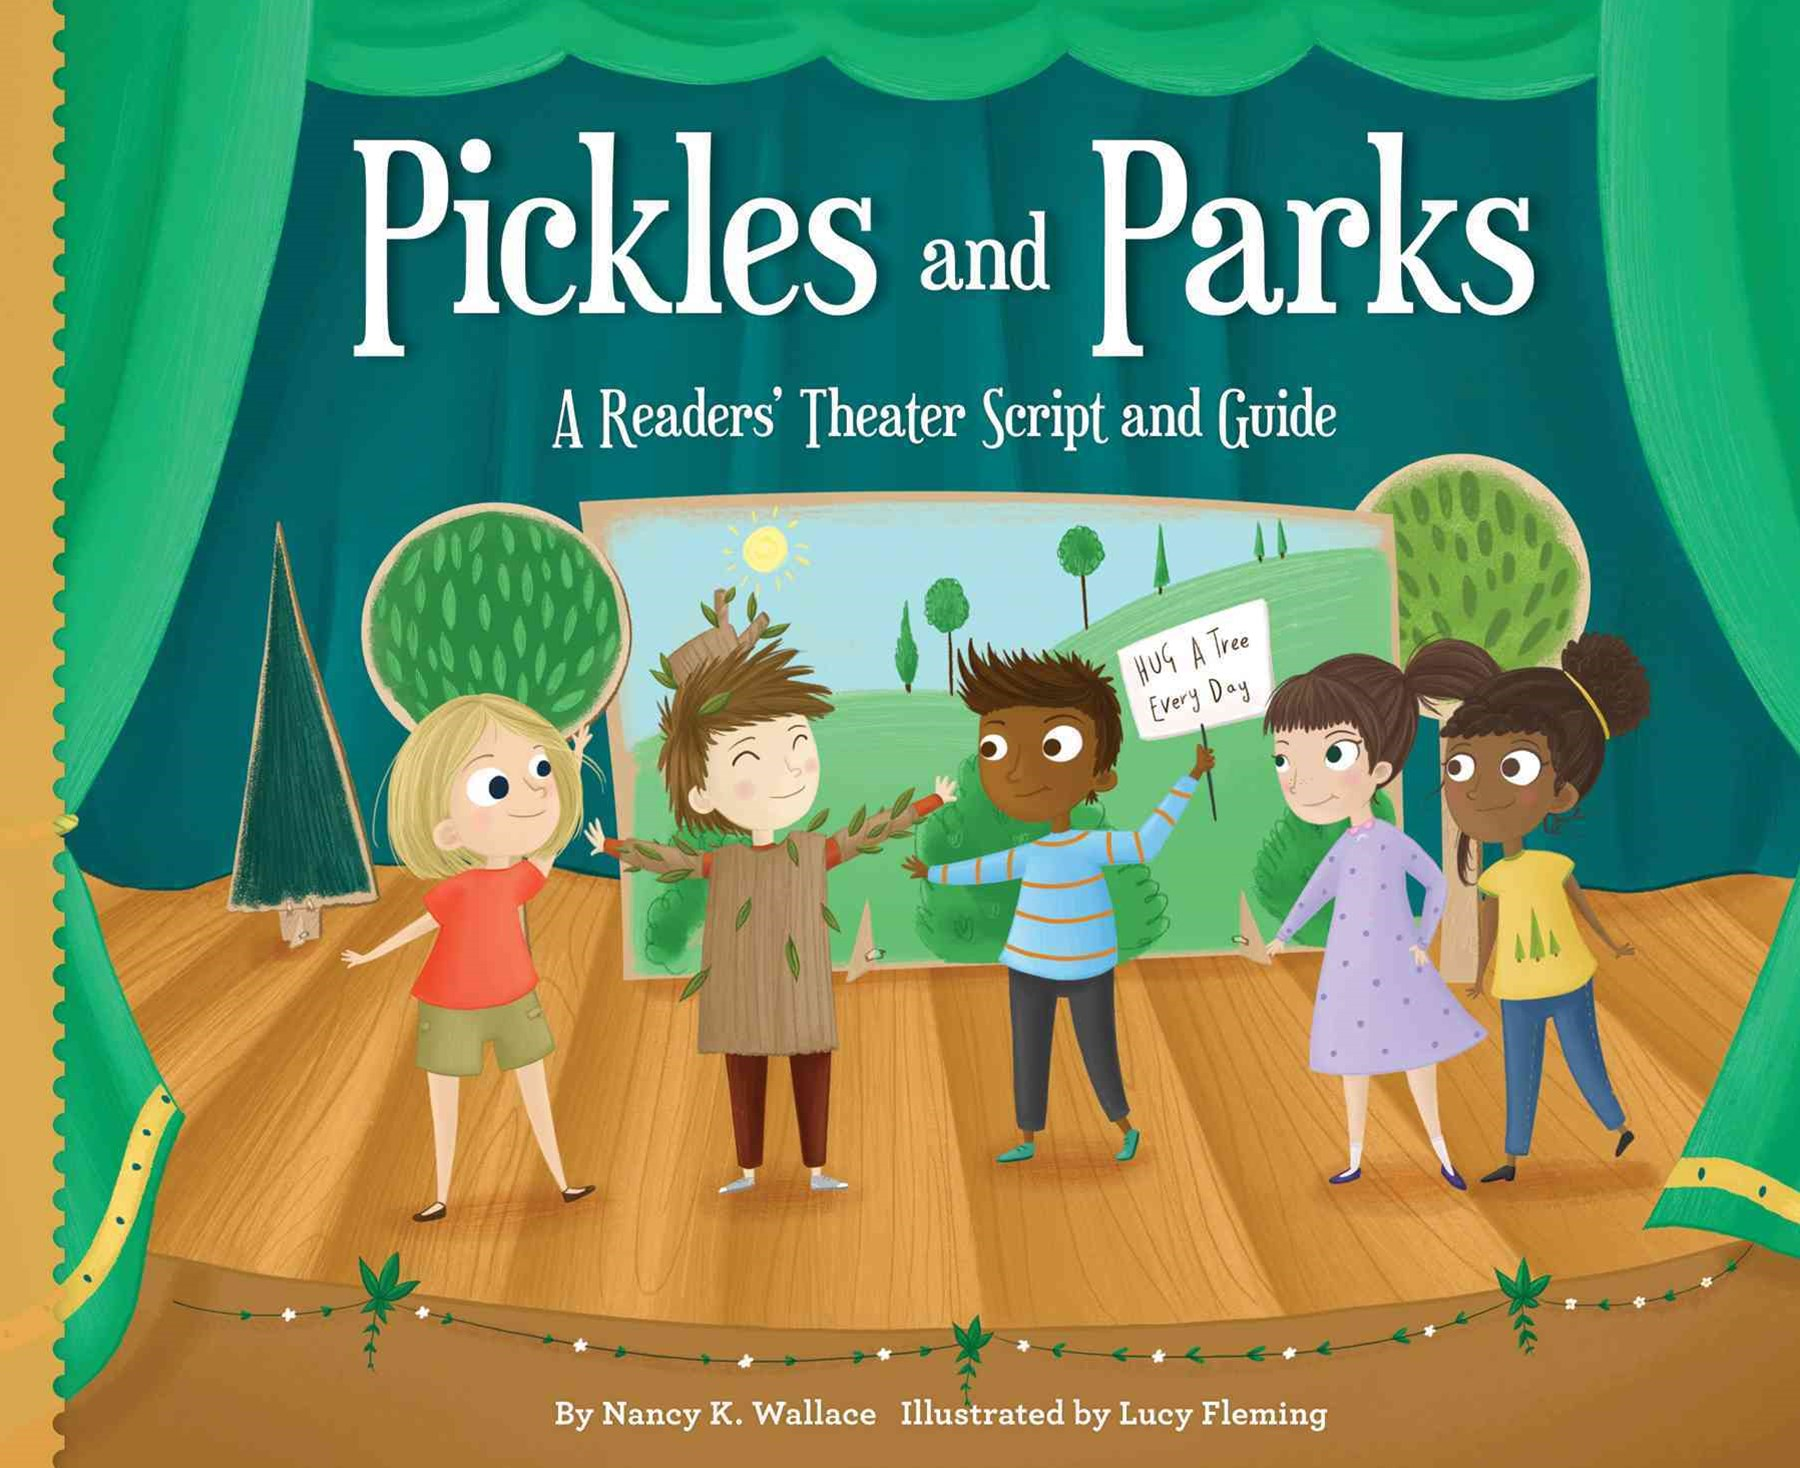 Pickles and Parks